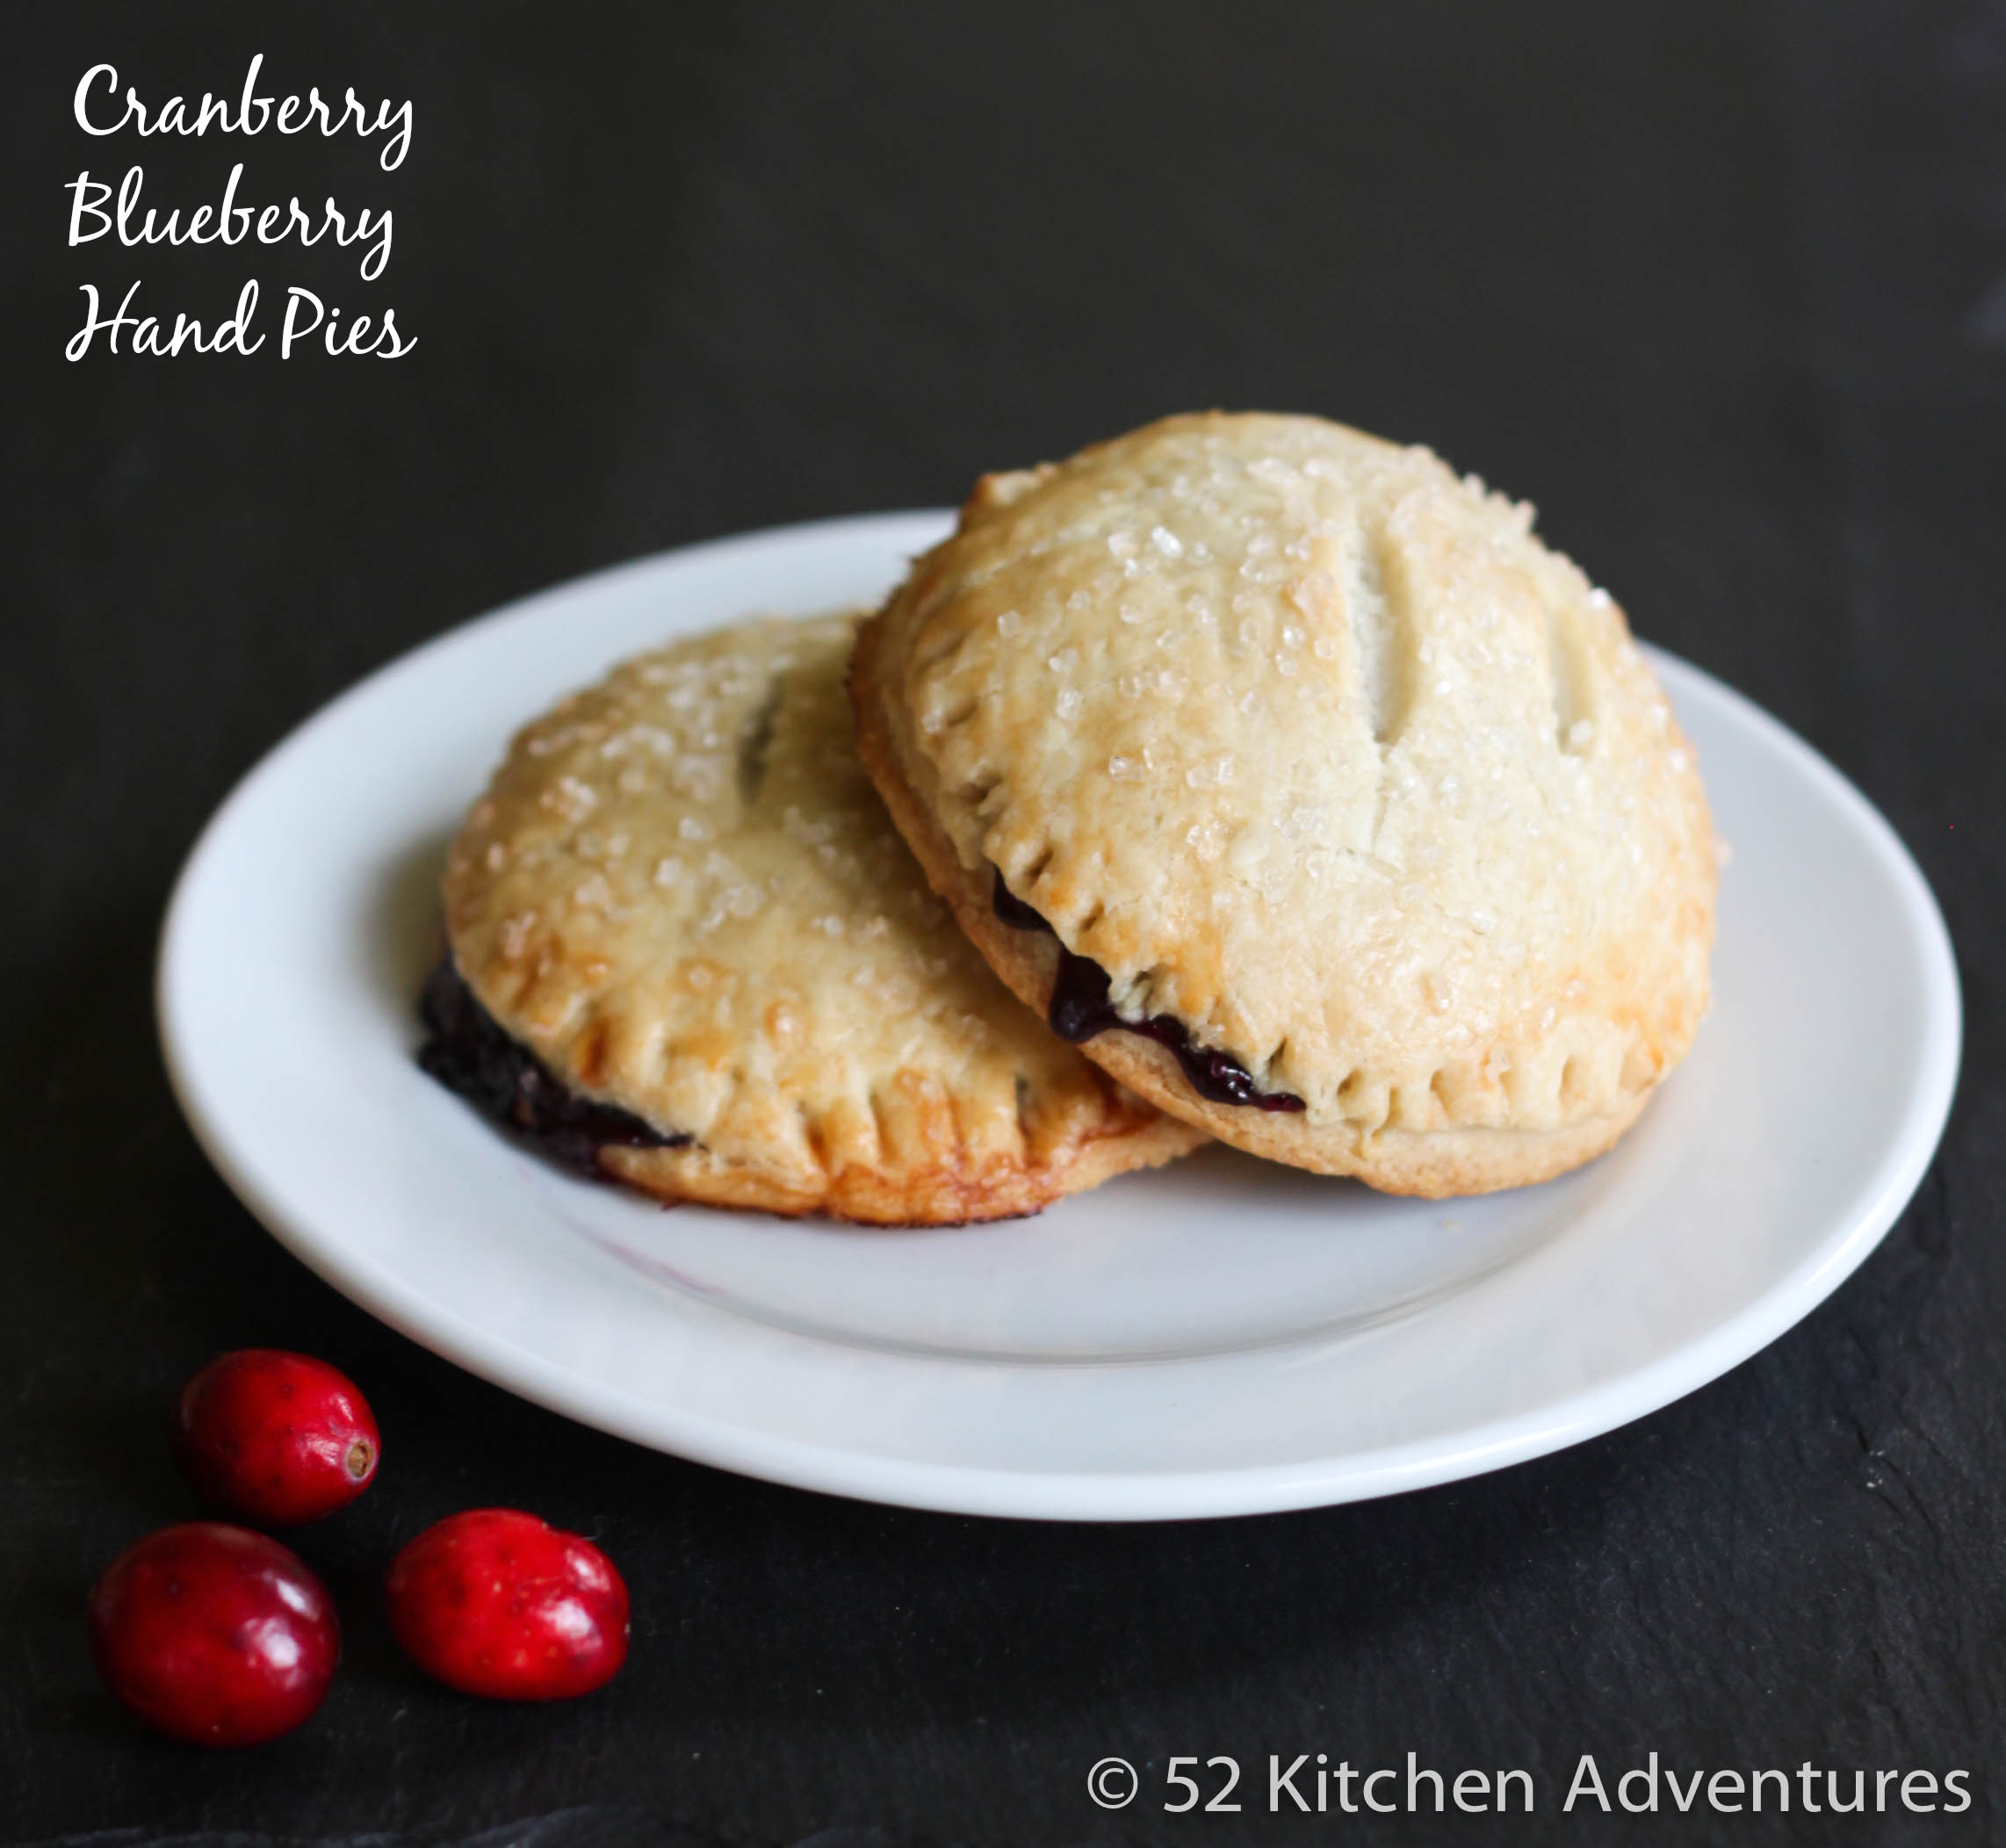 Cranberry Blueberry Hand Pies